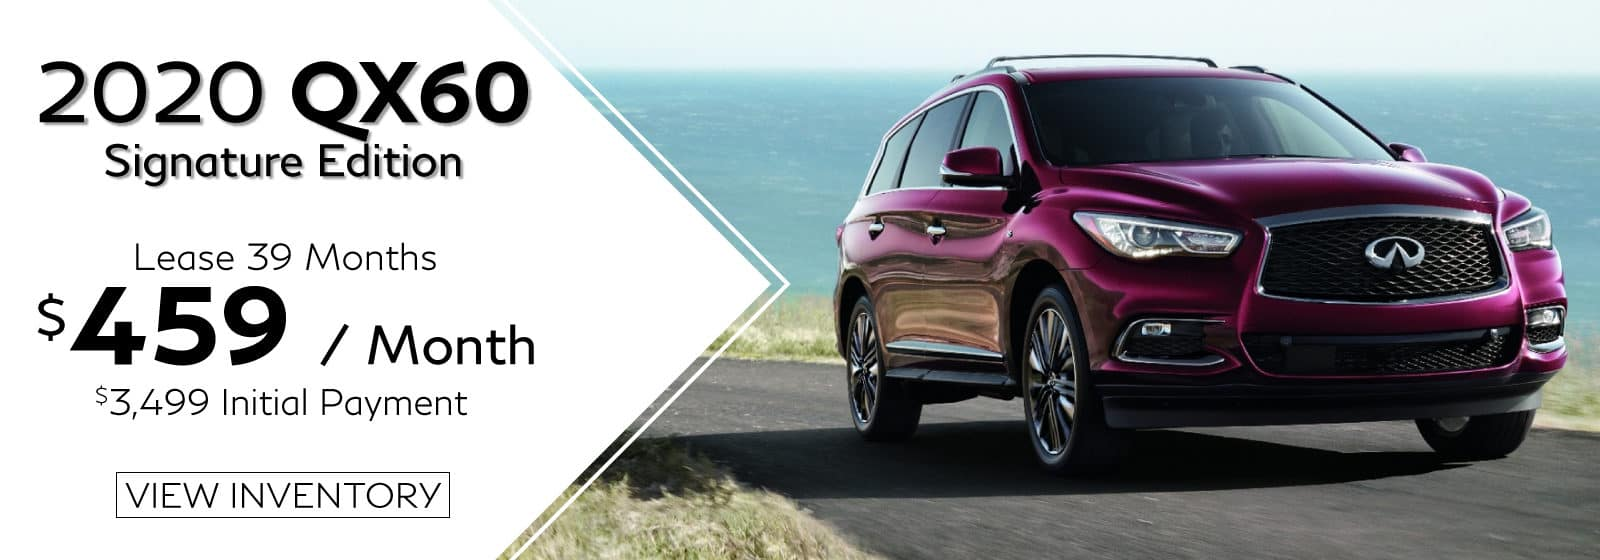 VIN 5N1DL0MN4LC547219. Well-qualified lessees lease a new 2020 QX60 Signature Edition in retailer stock for $459/Month for 39 months. $3,499 initial payment excludes taxes, title, and license. $3,499 due at lease signing (includes down payment). Offer valid only when financed through INFINITI Financial Services. Subject to residency restrictions. $51,275 MSRP includes destination and handling charge. Net capitalized cost of $42,447 includes a $700 non-refundable acquisition fee. Retailer contribution may affect actual price set by retailer. Monthly payments total $17,901 at lease end, purchase for $24,612, plus purchase option fee up to $300 (except KS & WI), plus tax, or pay excess wear & use plus $0.25 per mile for mileage over 10,000 miles per year. Disposition fee due at lease end. No security deposit required. Must take delivery from new retailer stock. Ends 02/01/2021. Photo for illustration purposes only.